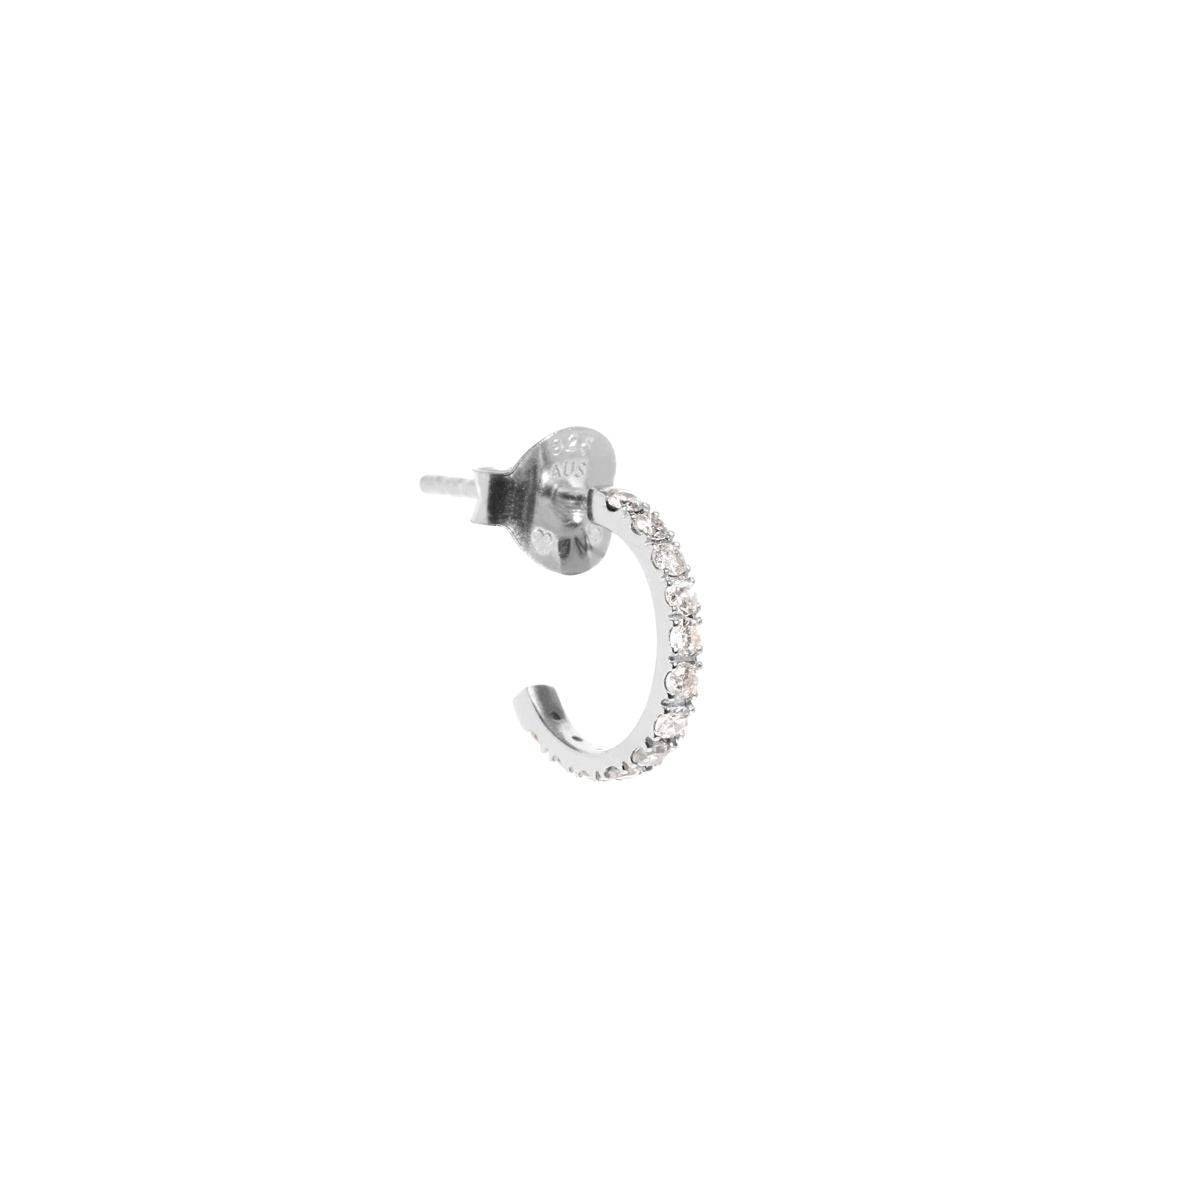 The Single Silver White Sapphire Huggie Earring